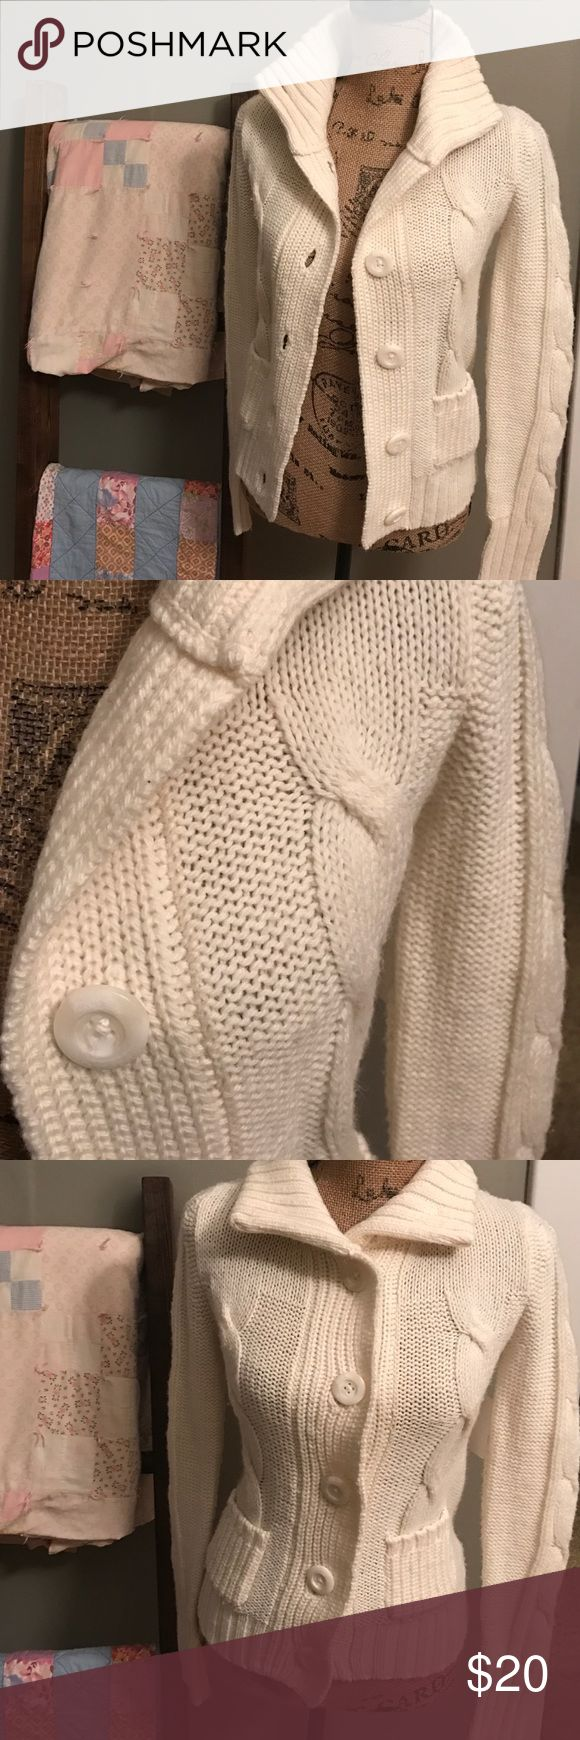 """Small American Eagle Cardigan Sweater Good Preloved condition. Some minor fuzzing on arms as shown. Cute chunky buttons and cable knit front. Winter white. Perfect versatile wardrobe addition! I have tons of listings and bundle discount. ✔️my closet to save 💰 on shipping! I ❤️Offers! Chest laid flat 32"""" armpit to bottom approx 14.5"""". American Eagle Outfitters Sweaters Cardigans"""